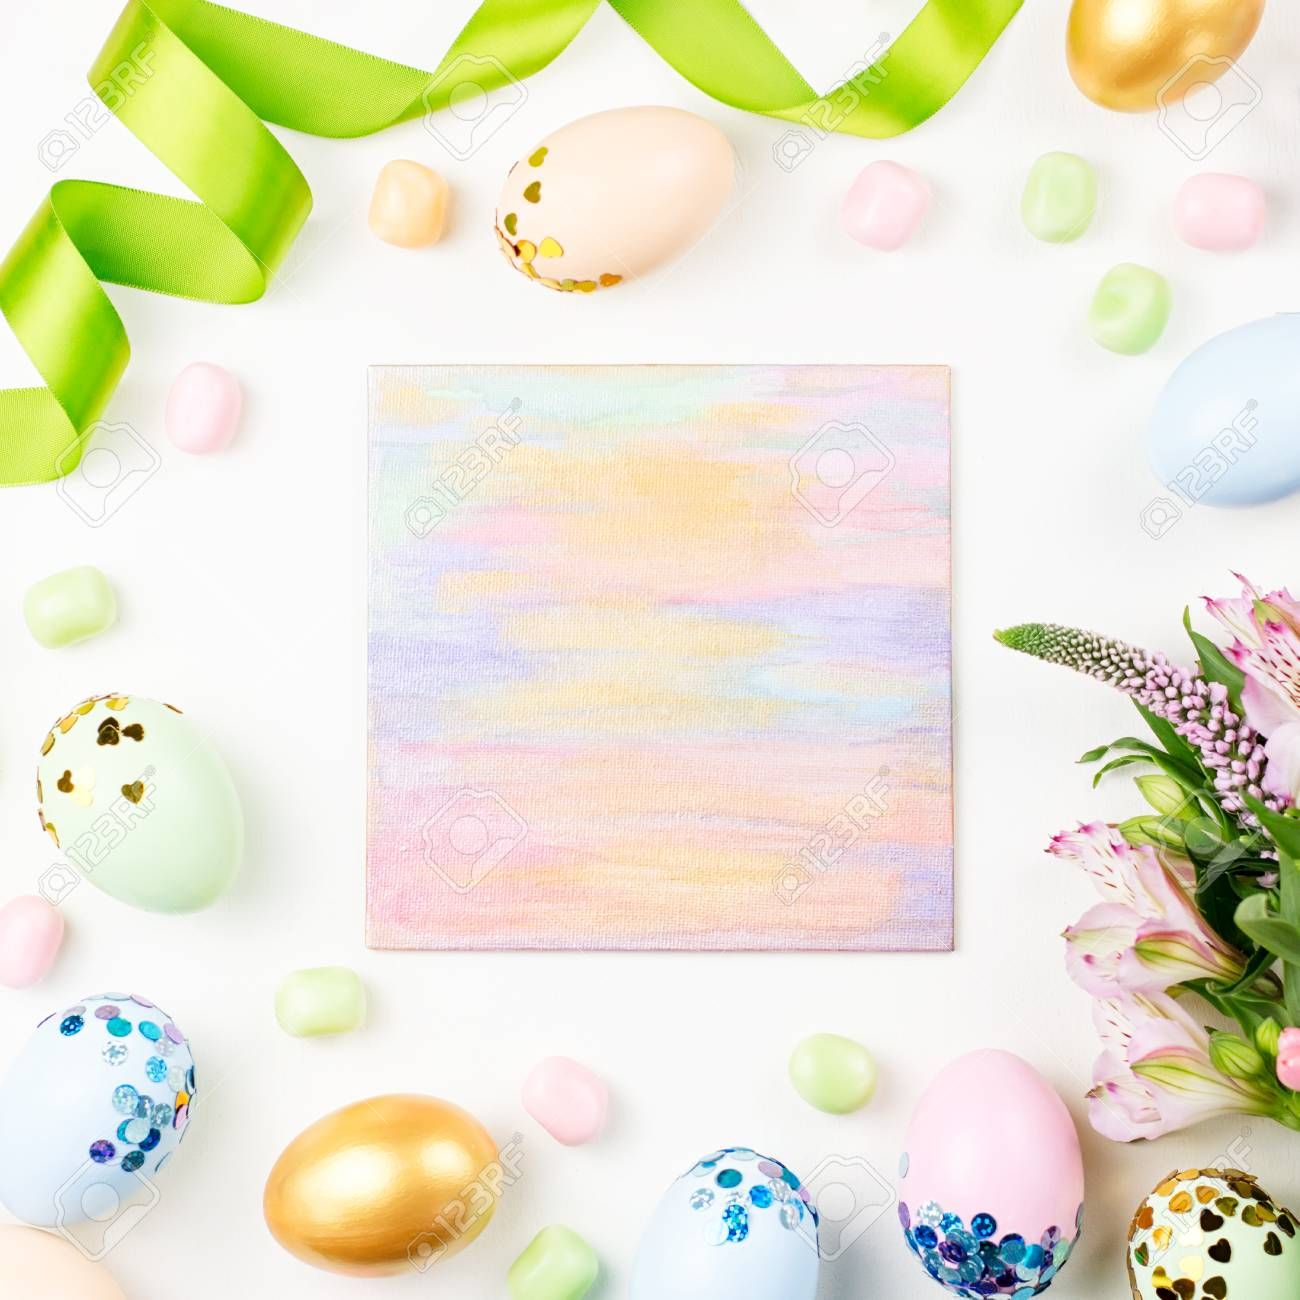 Festive Easter Background With Decorated Eggs Flowers Candy And